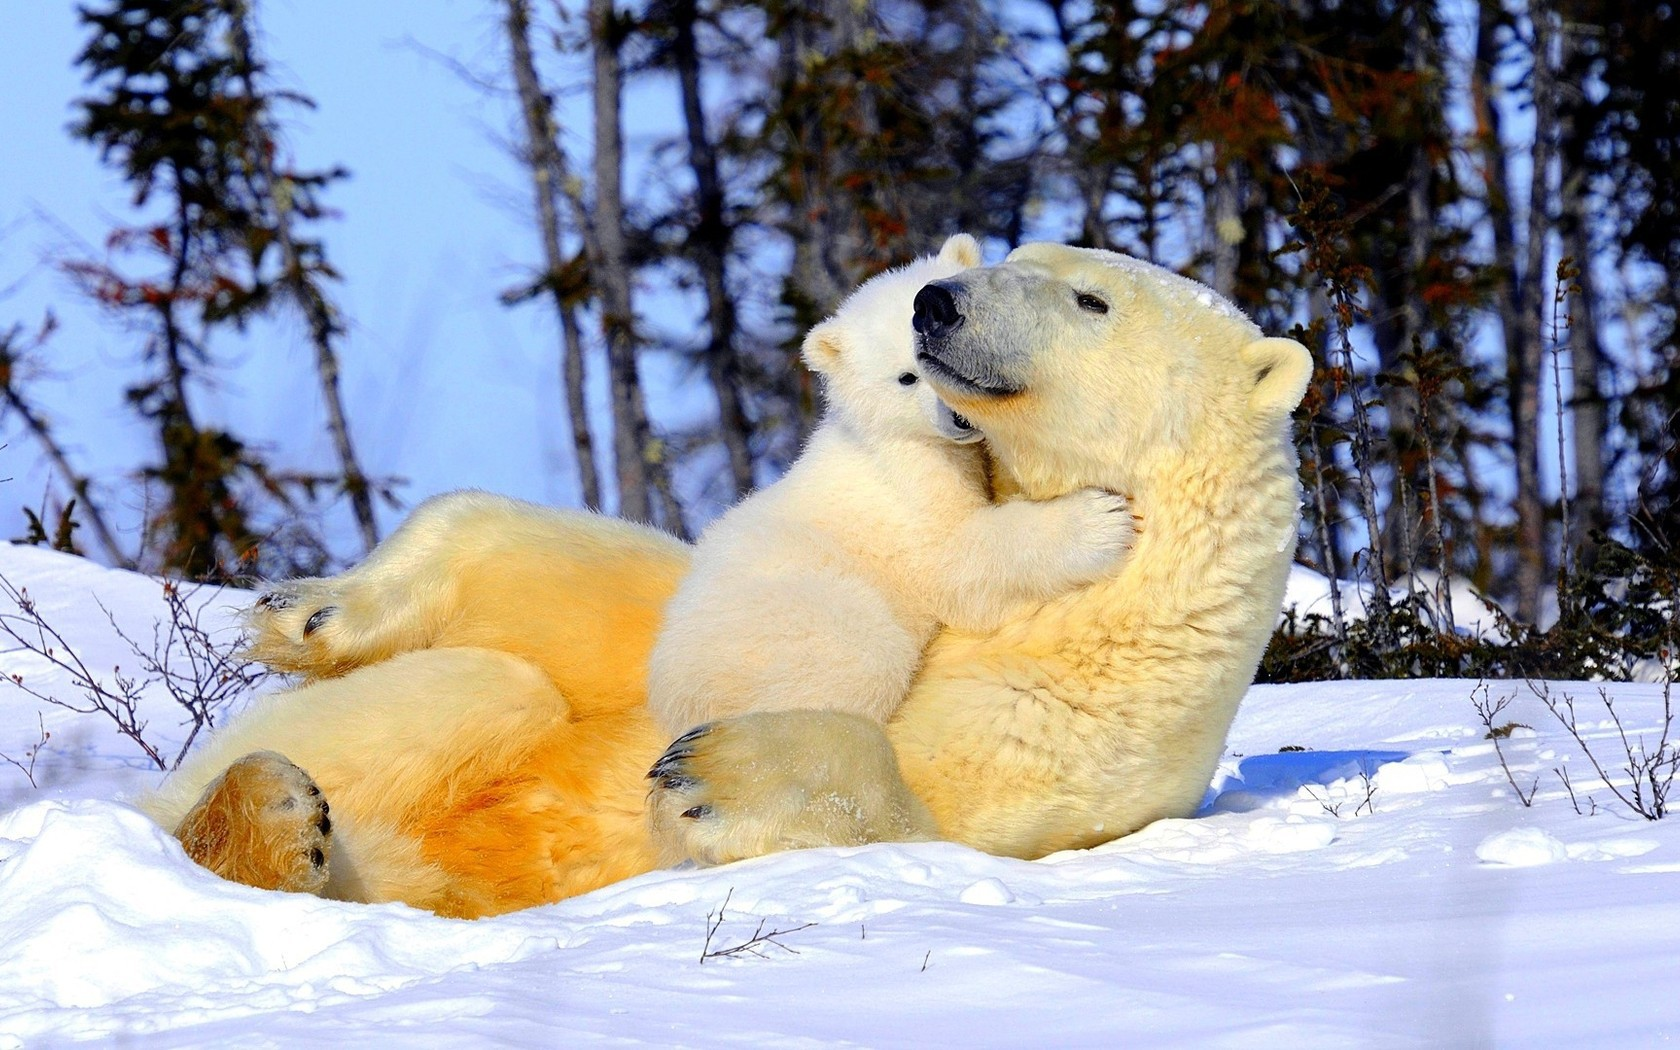 37182 download wallpaper Animals, Bears screensavers and pictures for free